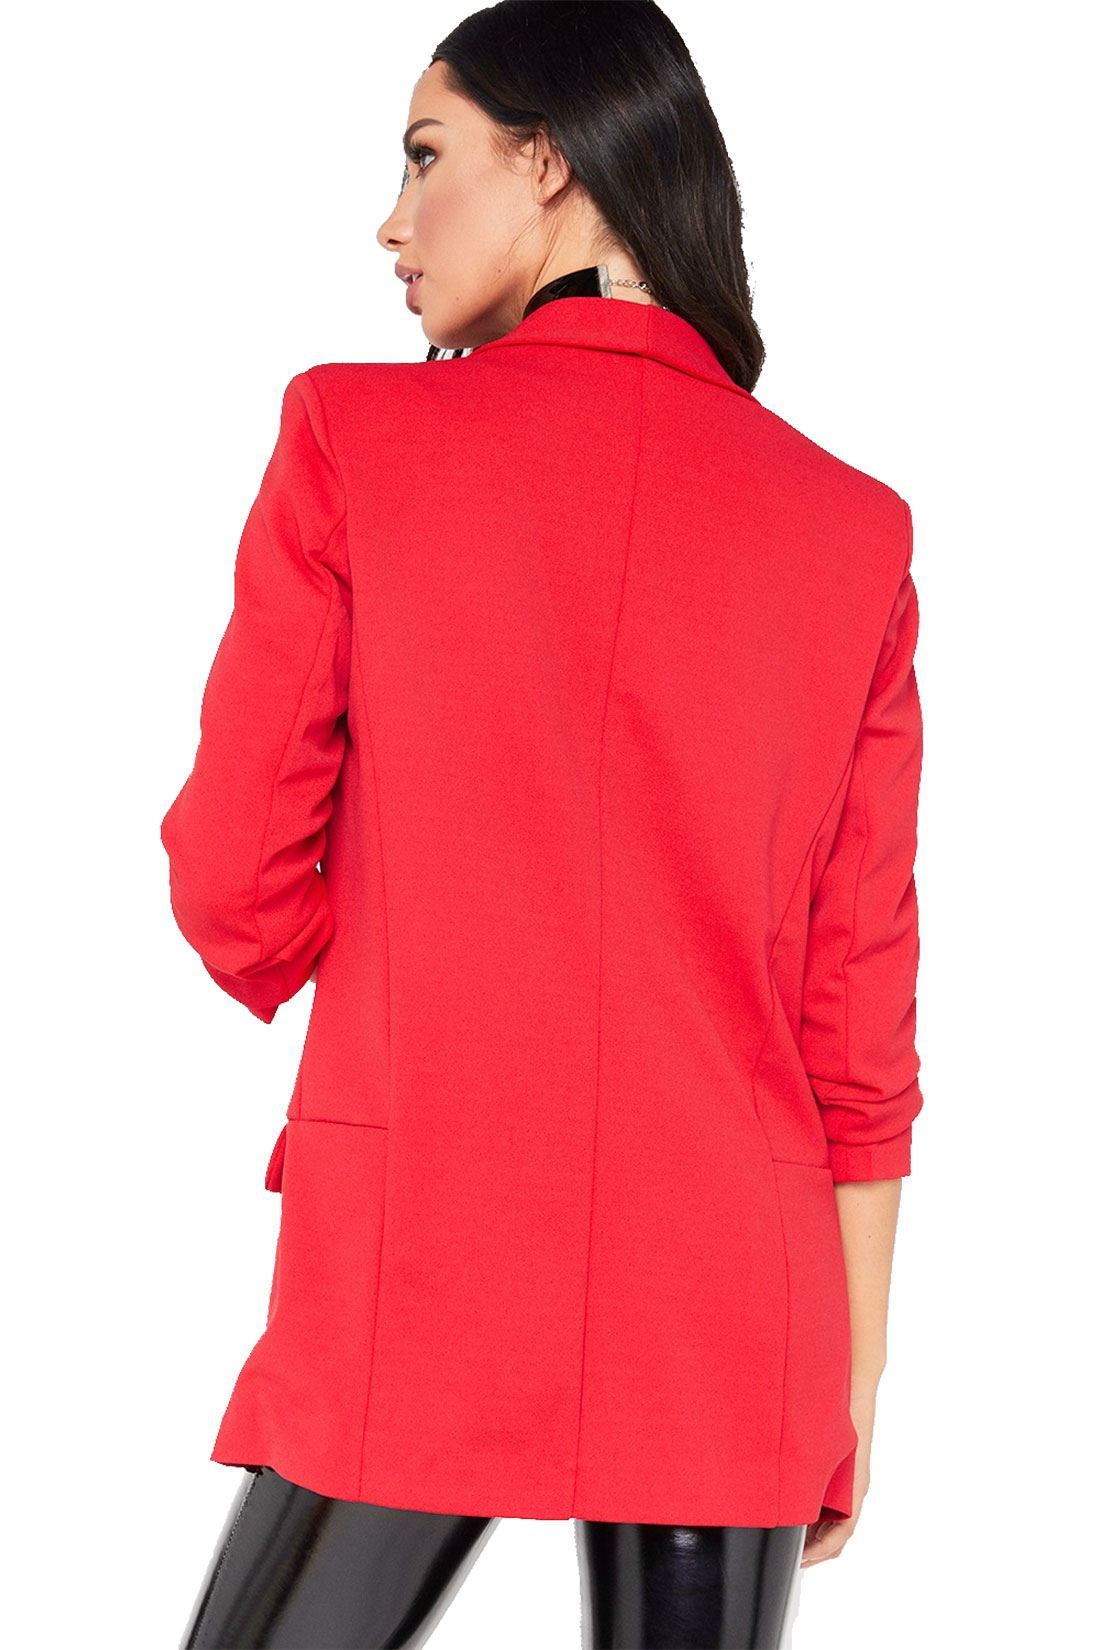 Ladies Women Plain Open Ruffle Frill Coat Jacket Duster 3//4 Sleeve Blazer Tops